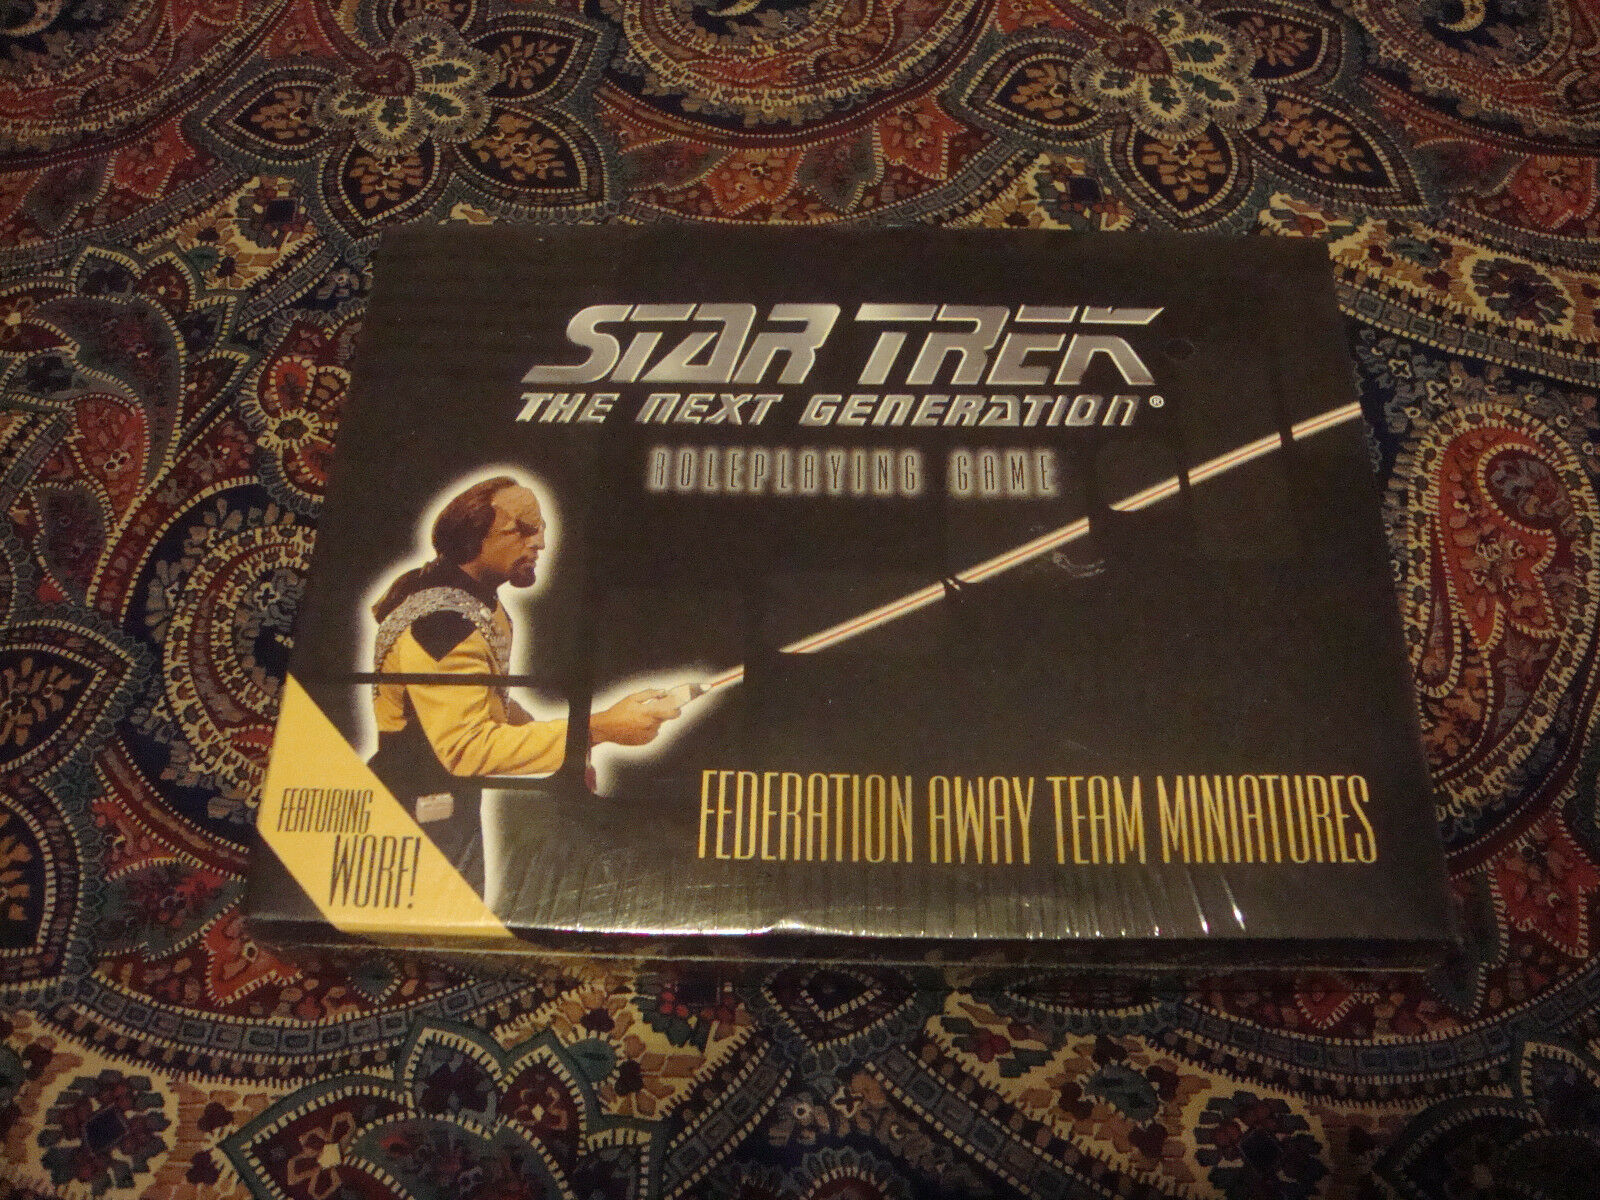 Star Trek The Next Generation GN Jeu Fédération Away Team miniatures